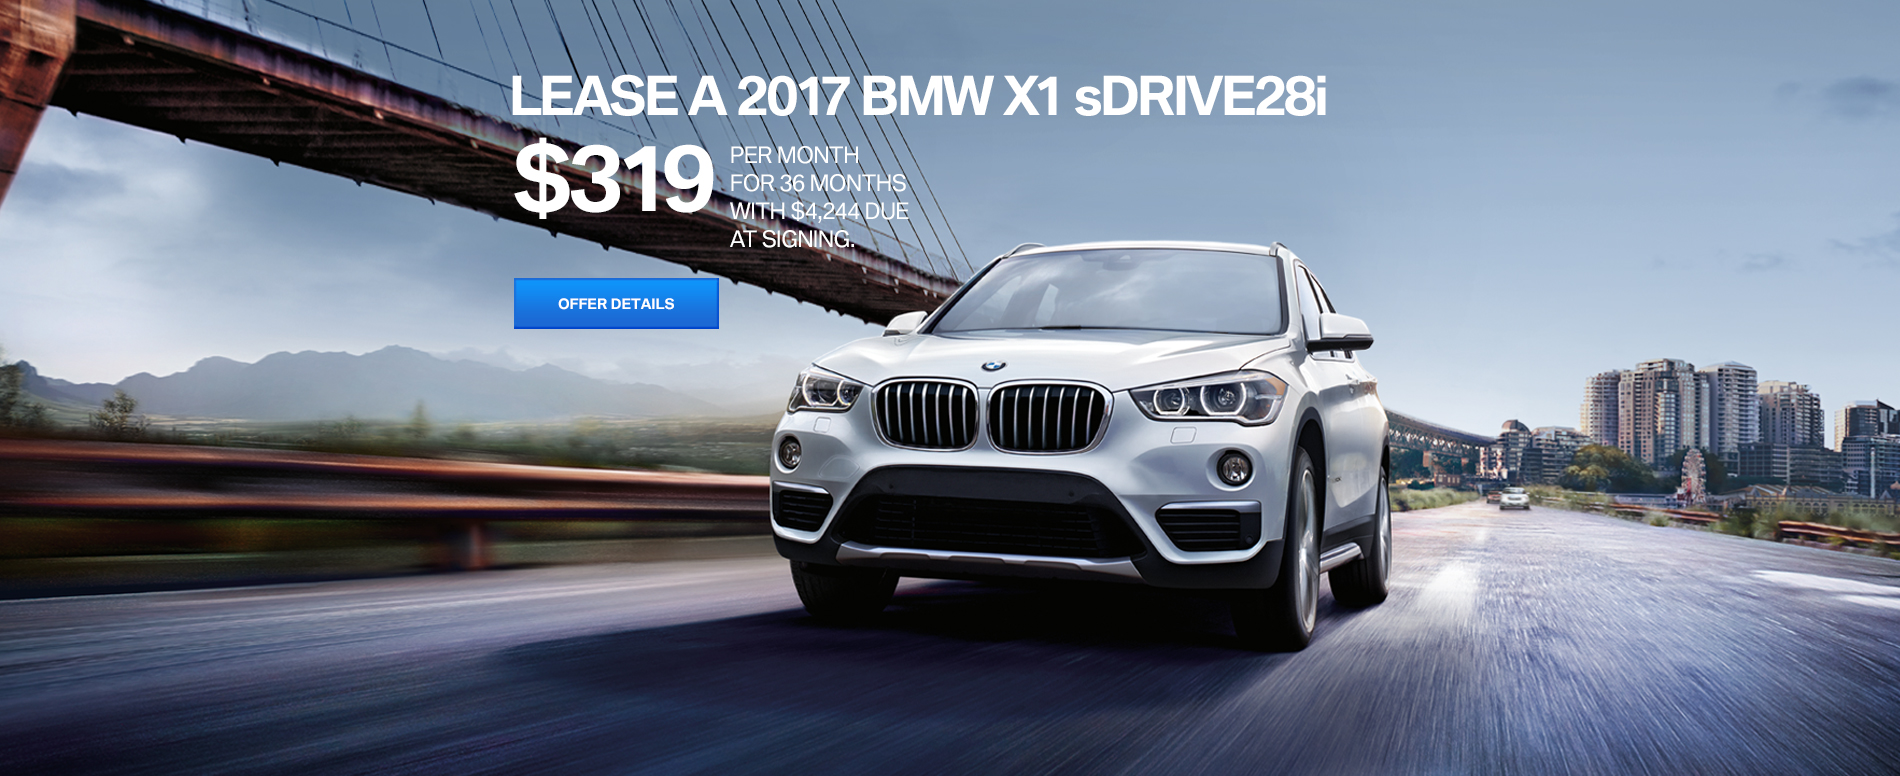 LEASE A 2017 BMW X1 sDRIVE28i FOR $319/MO FOR 36 MONTHS; WITH $4